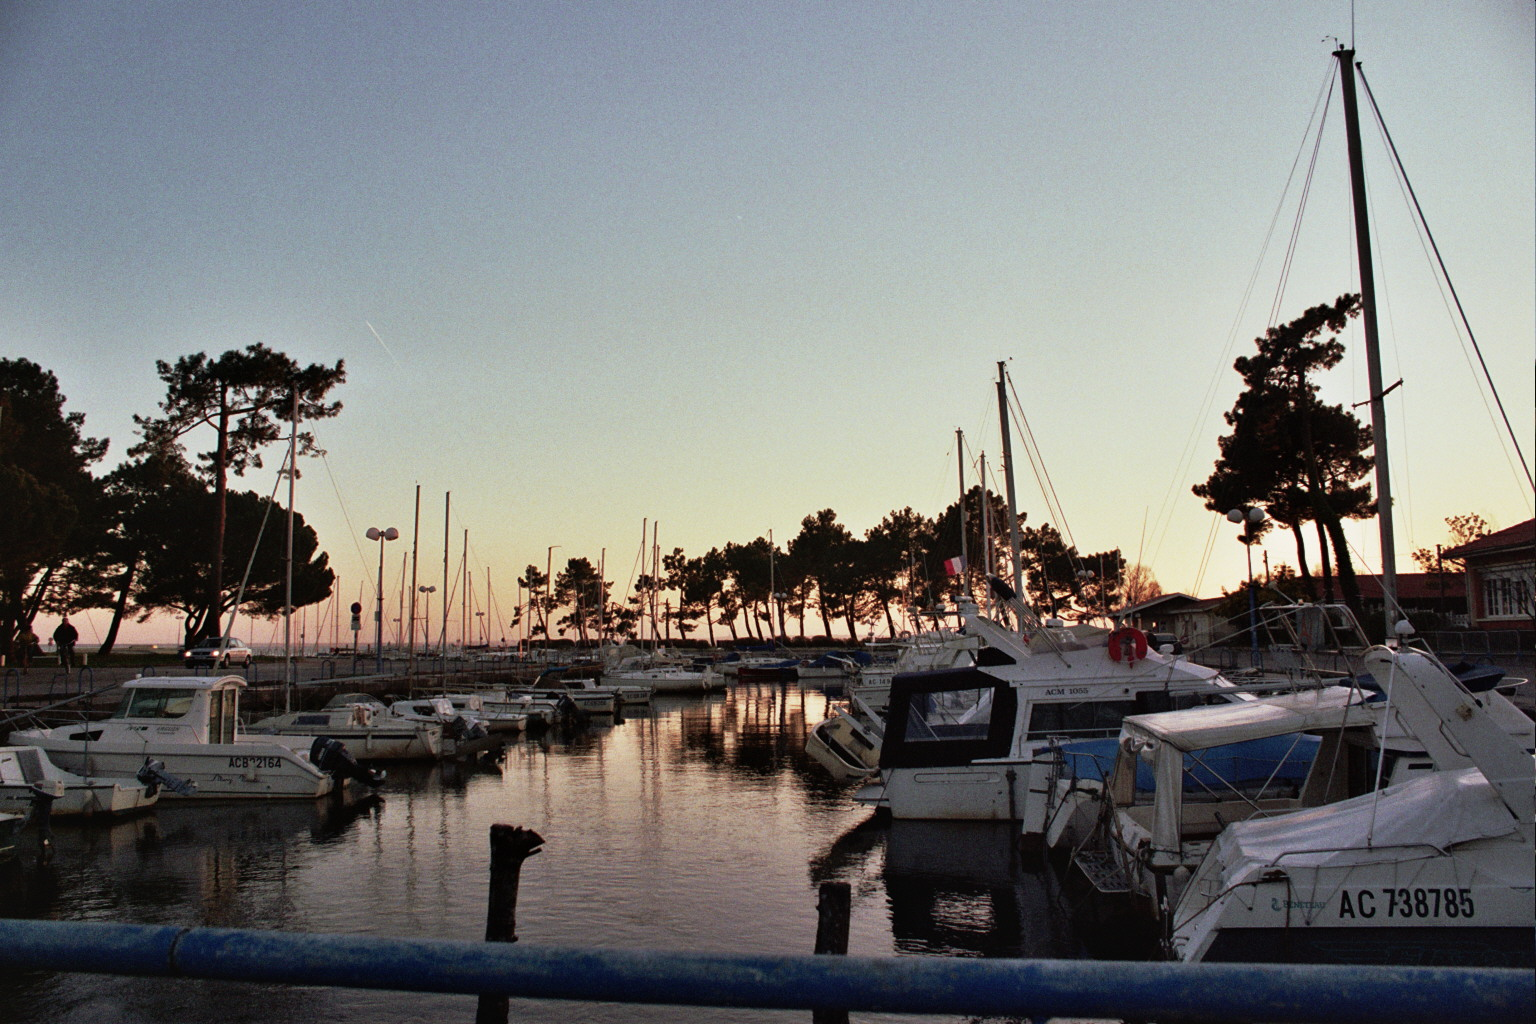 Port de plaisance du Bétey printemps 2015